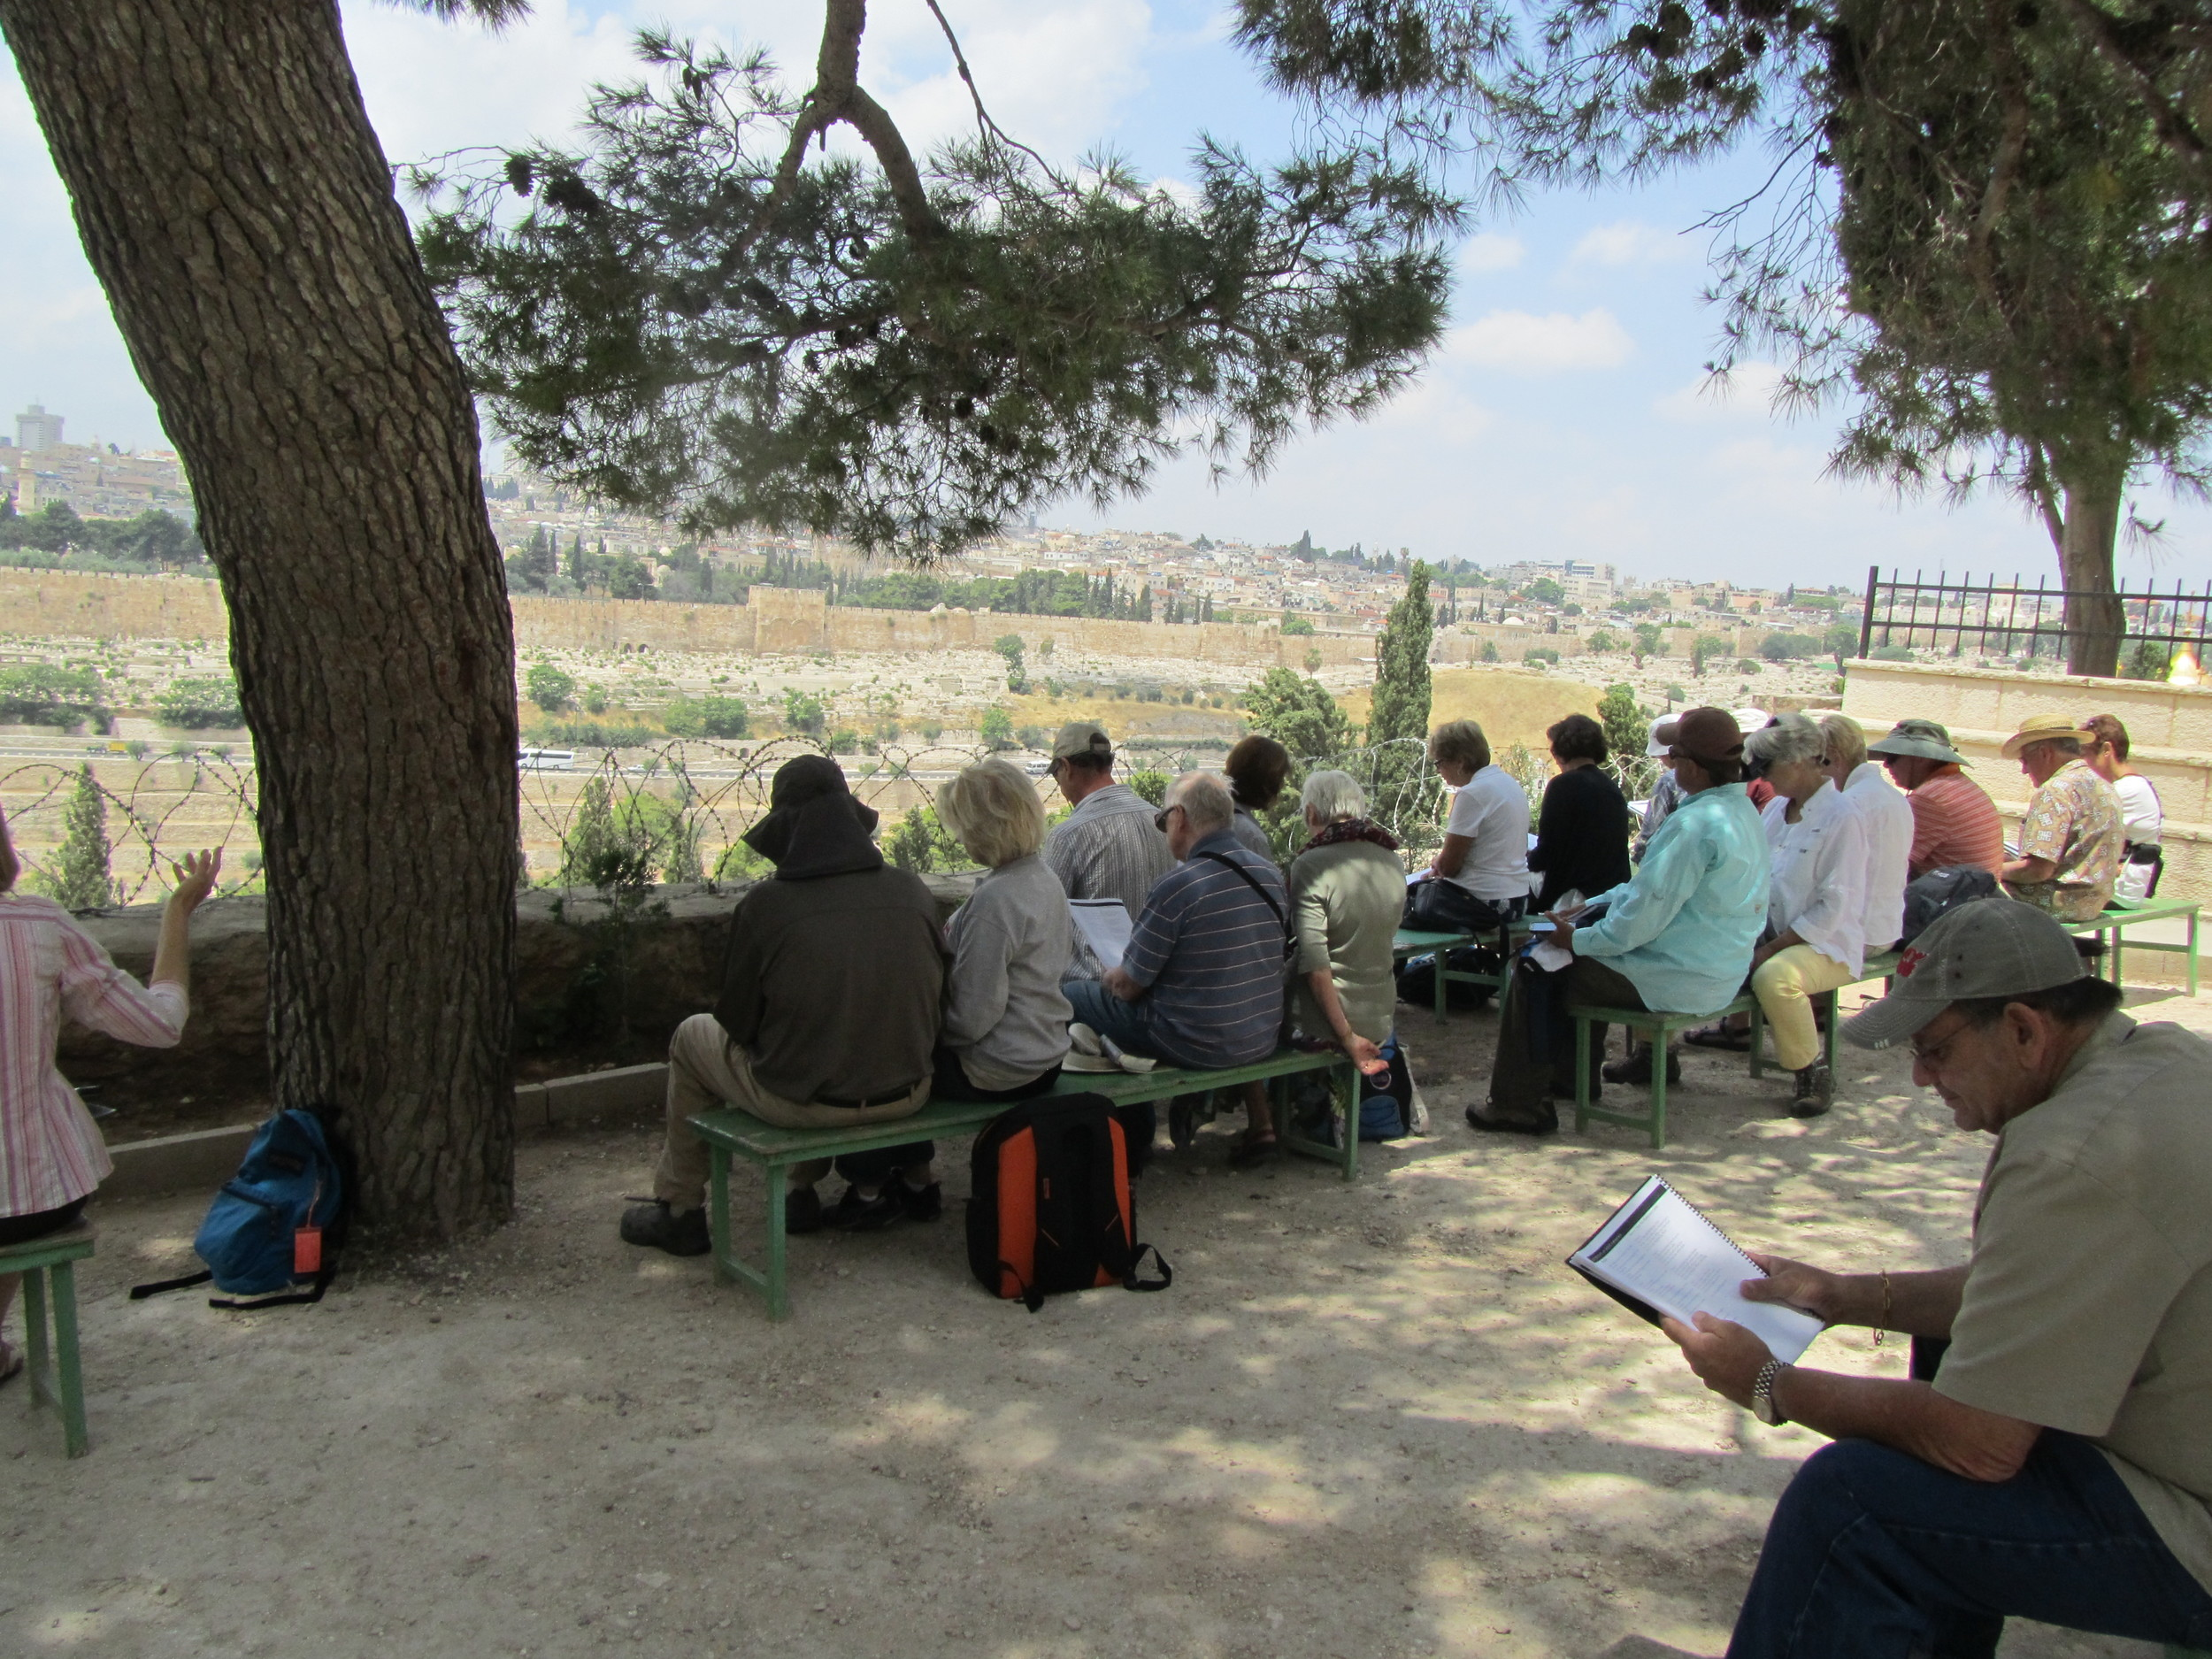 Worshiping on the Mount of Olives